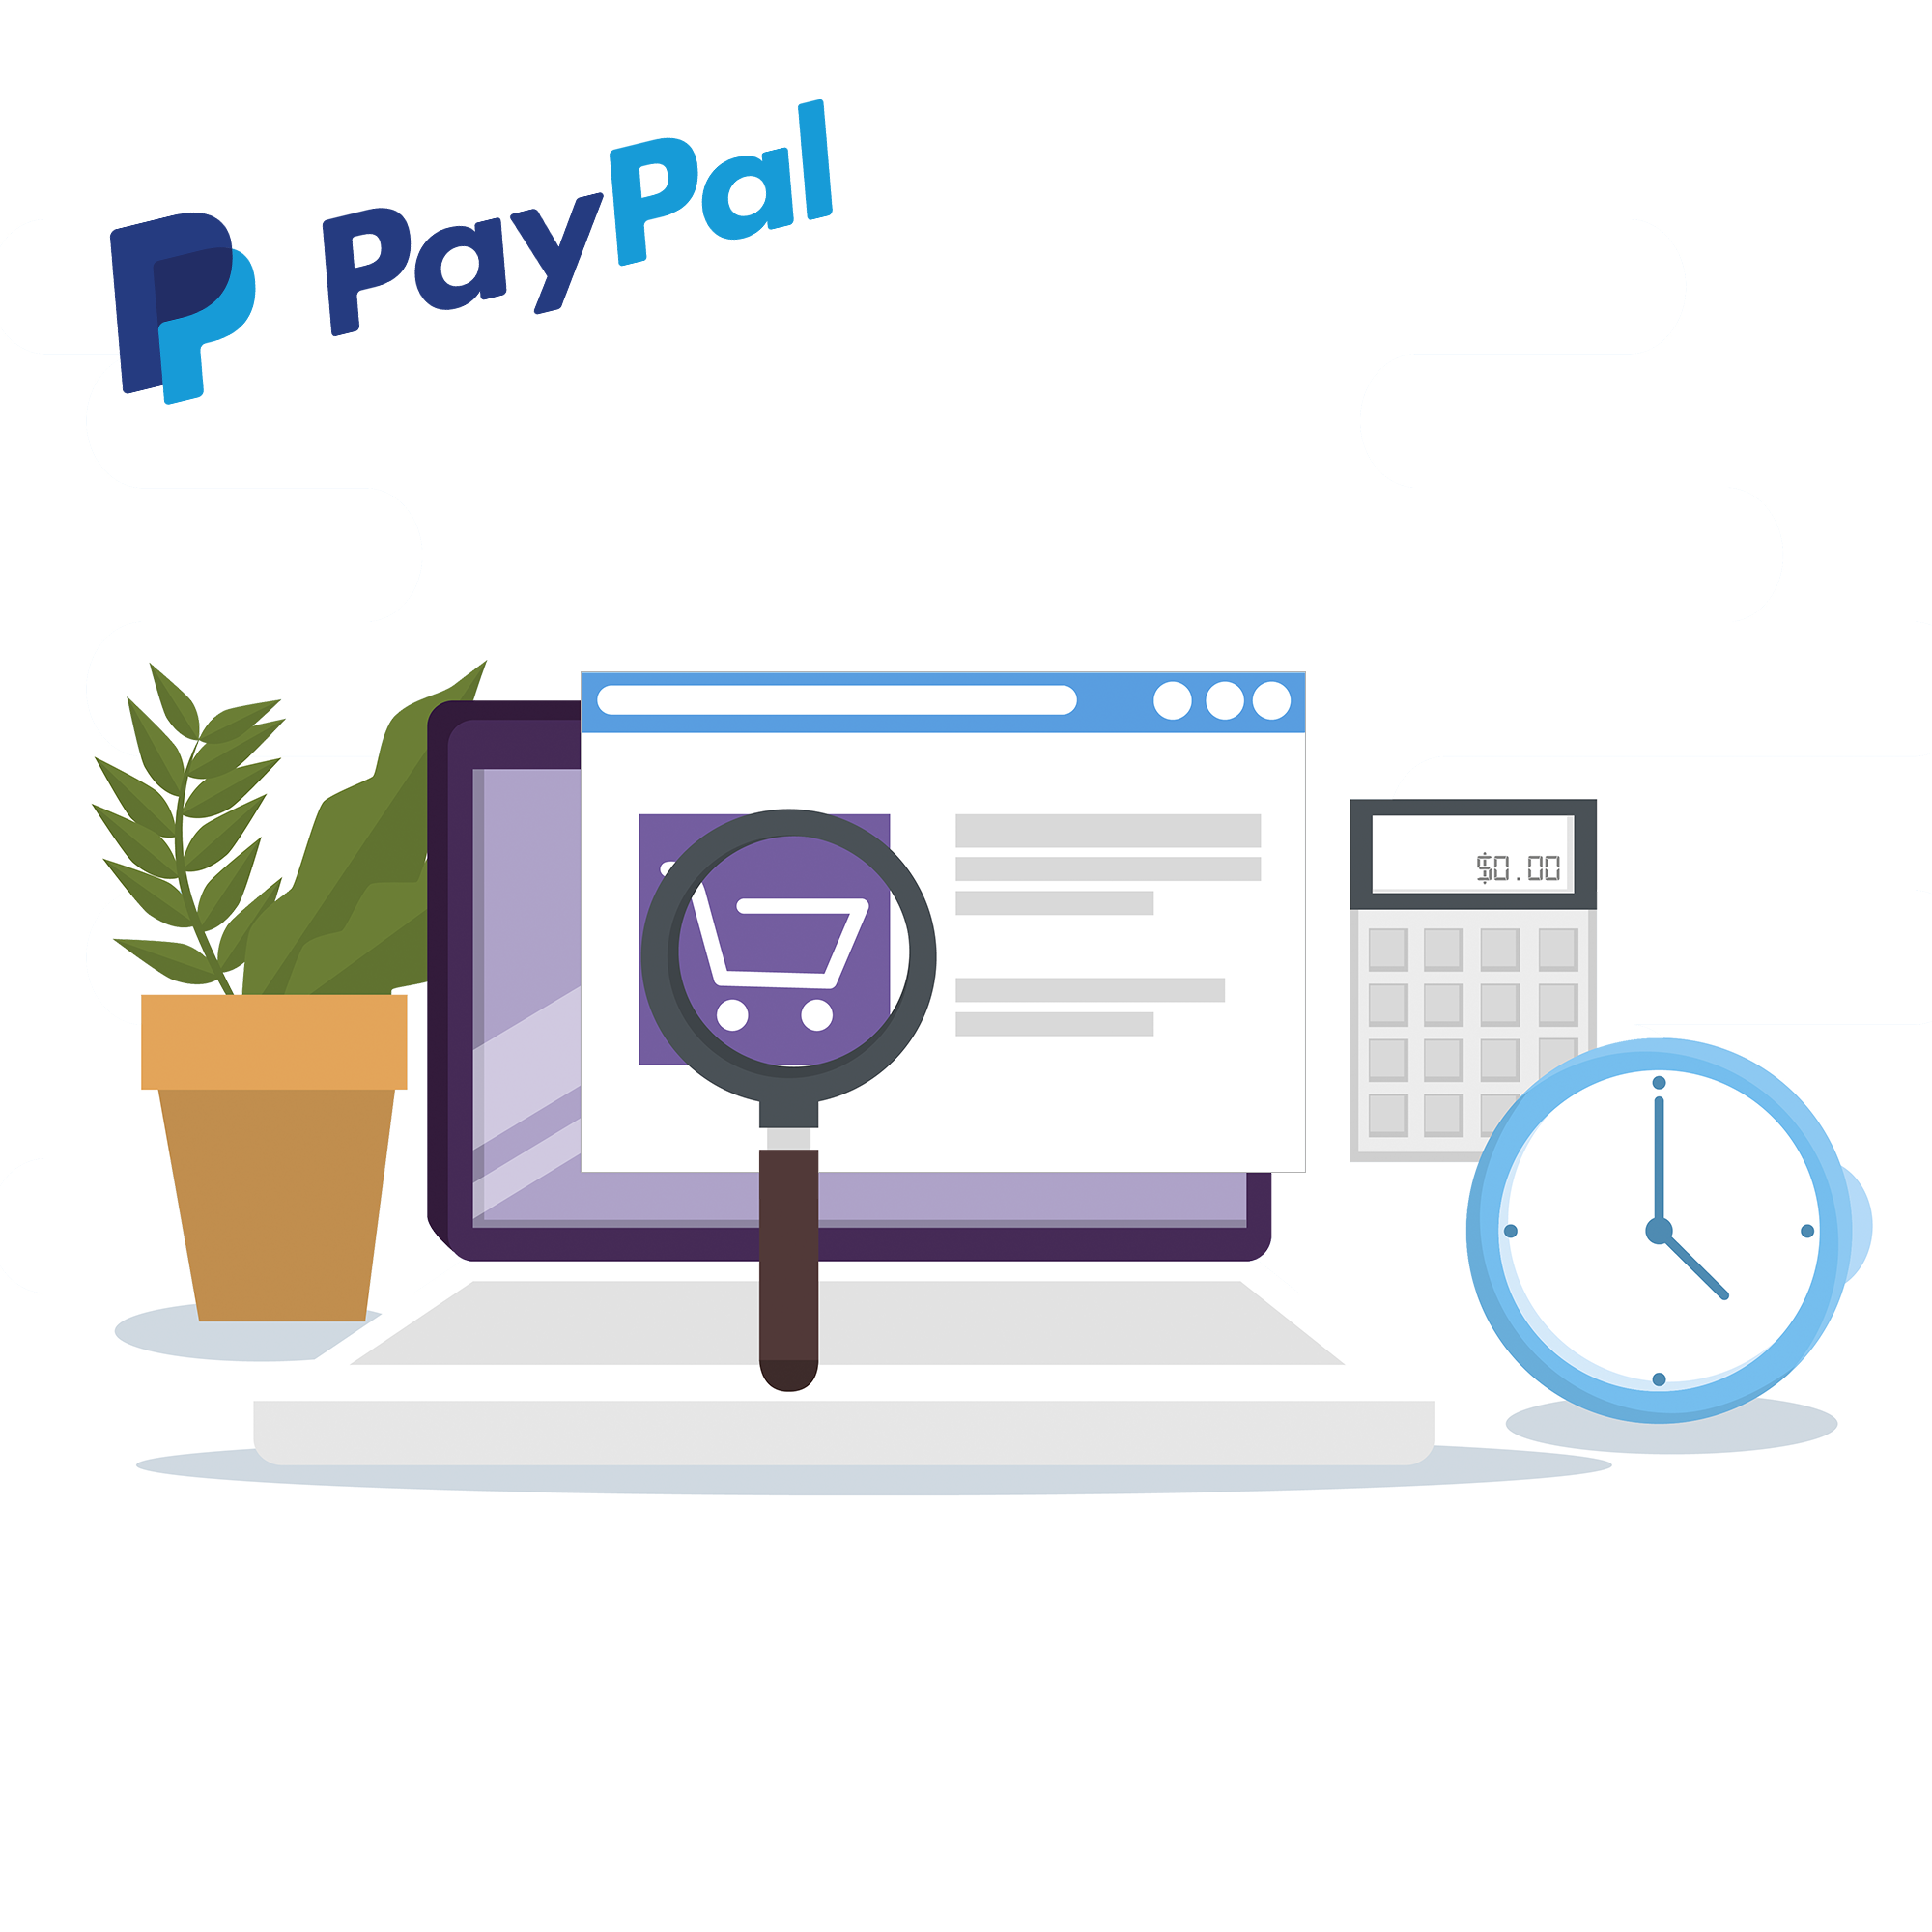 How to keep track of PayPal sales in QBO - see the product income account